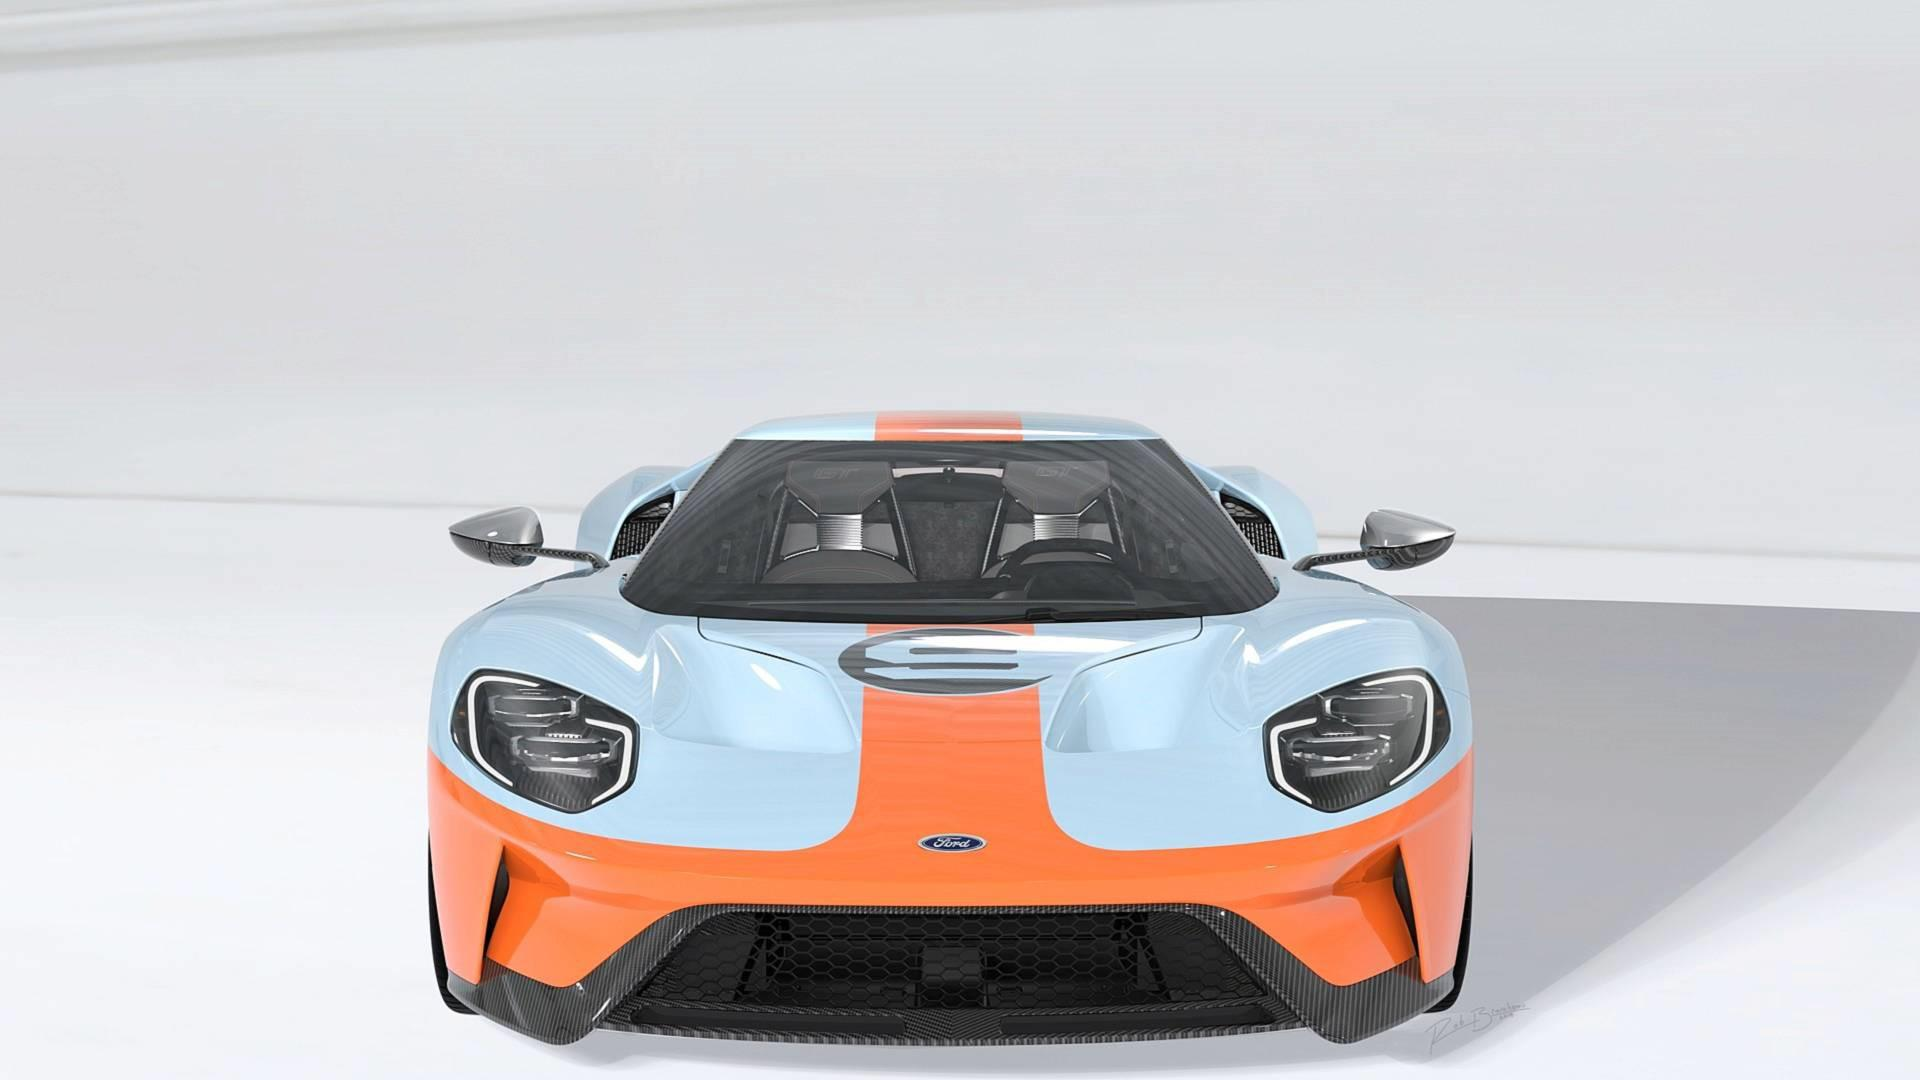 ford-devoile-une-livree-specifique-de-sa-gt-ford-gt-heritage-edition-gulf-862-2.jpg